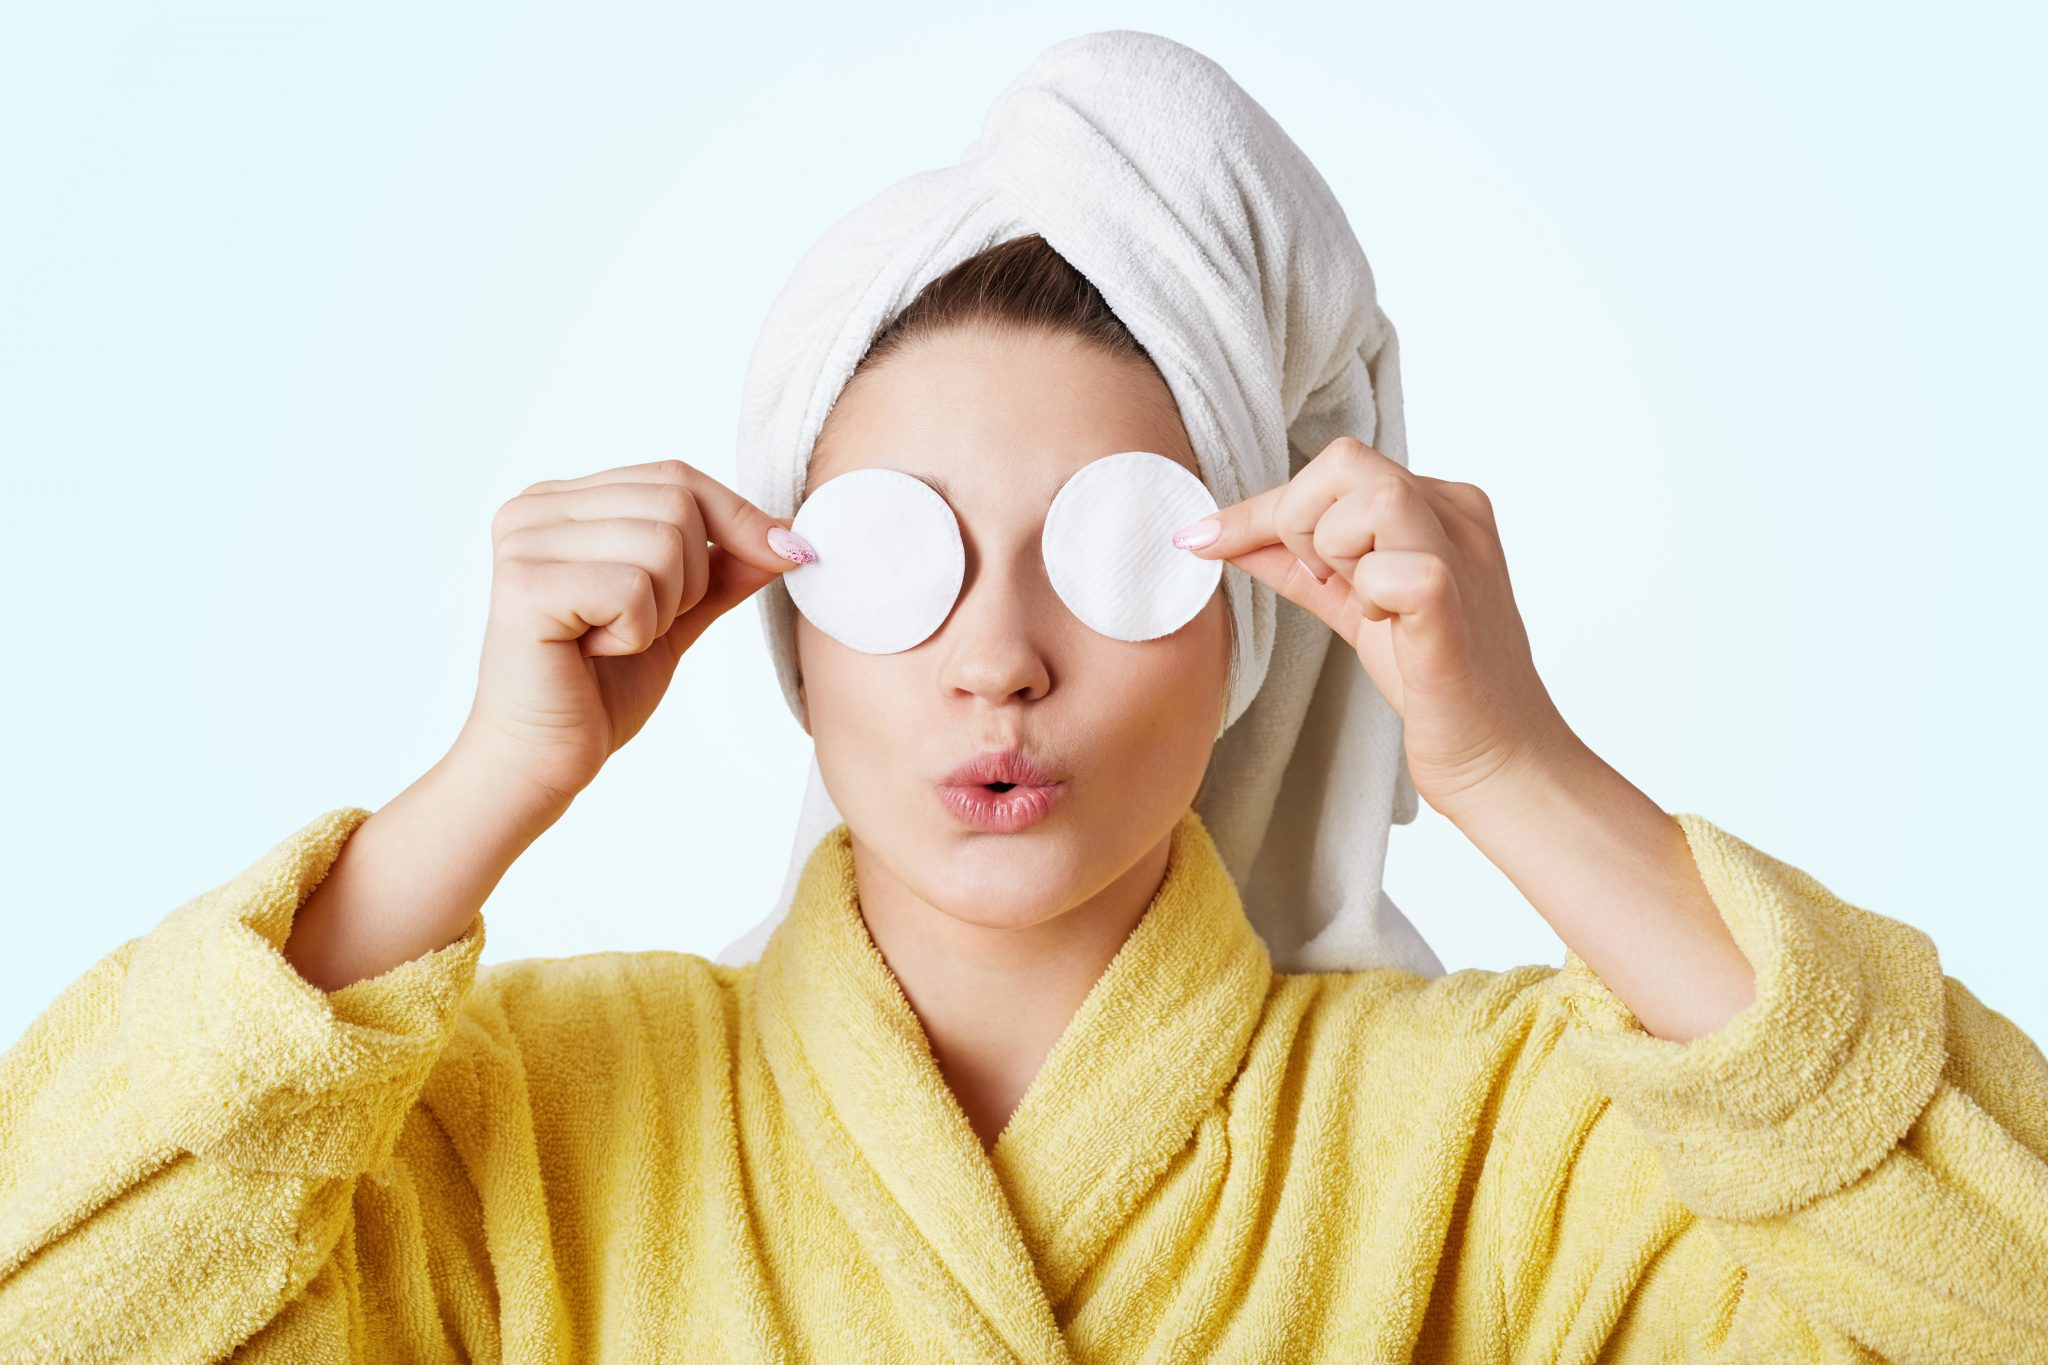 Funny woman foolishes after taking shower, wears towel and bathrobe, covers eyes with cotton wheels, going to apply cosmtics and do make up, isolated on white background. Beauty and hygiene concept